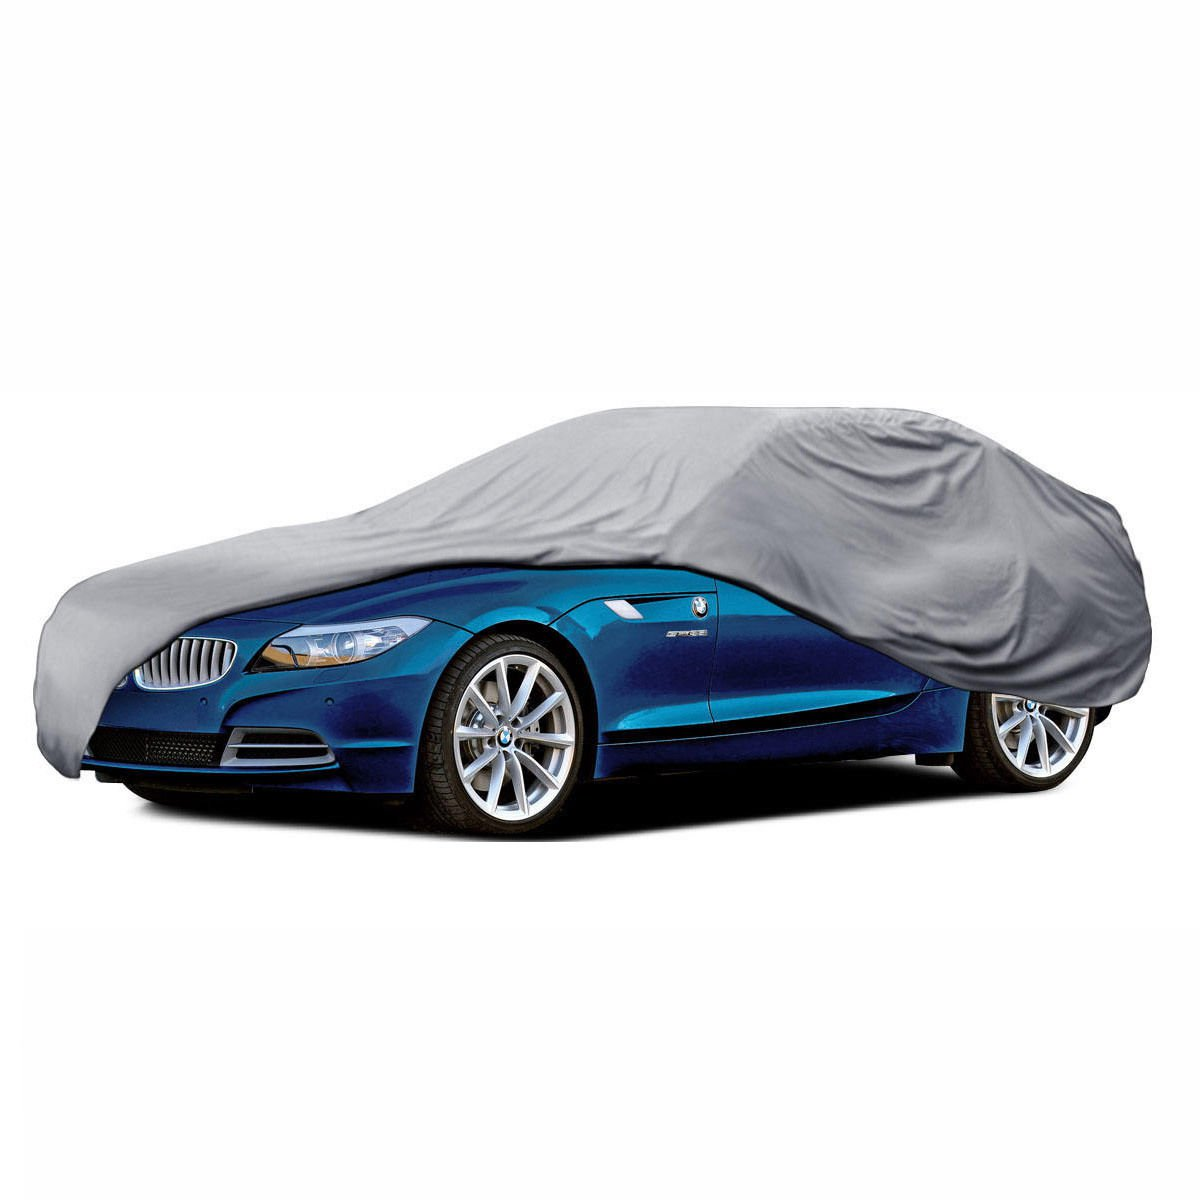 Bmw Z3 Car Cover: Car Cover For BMW Z Series Outdoor Waterproof All Weather